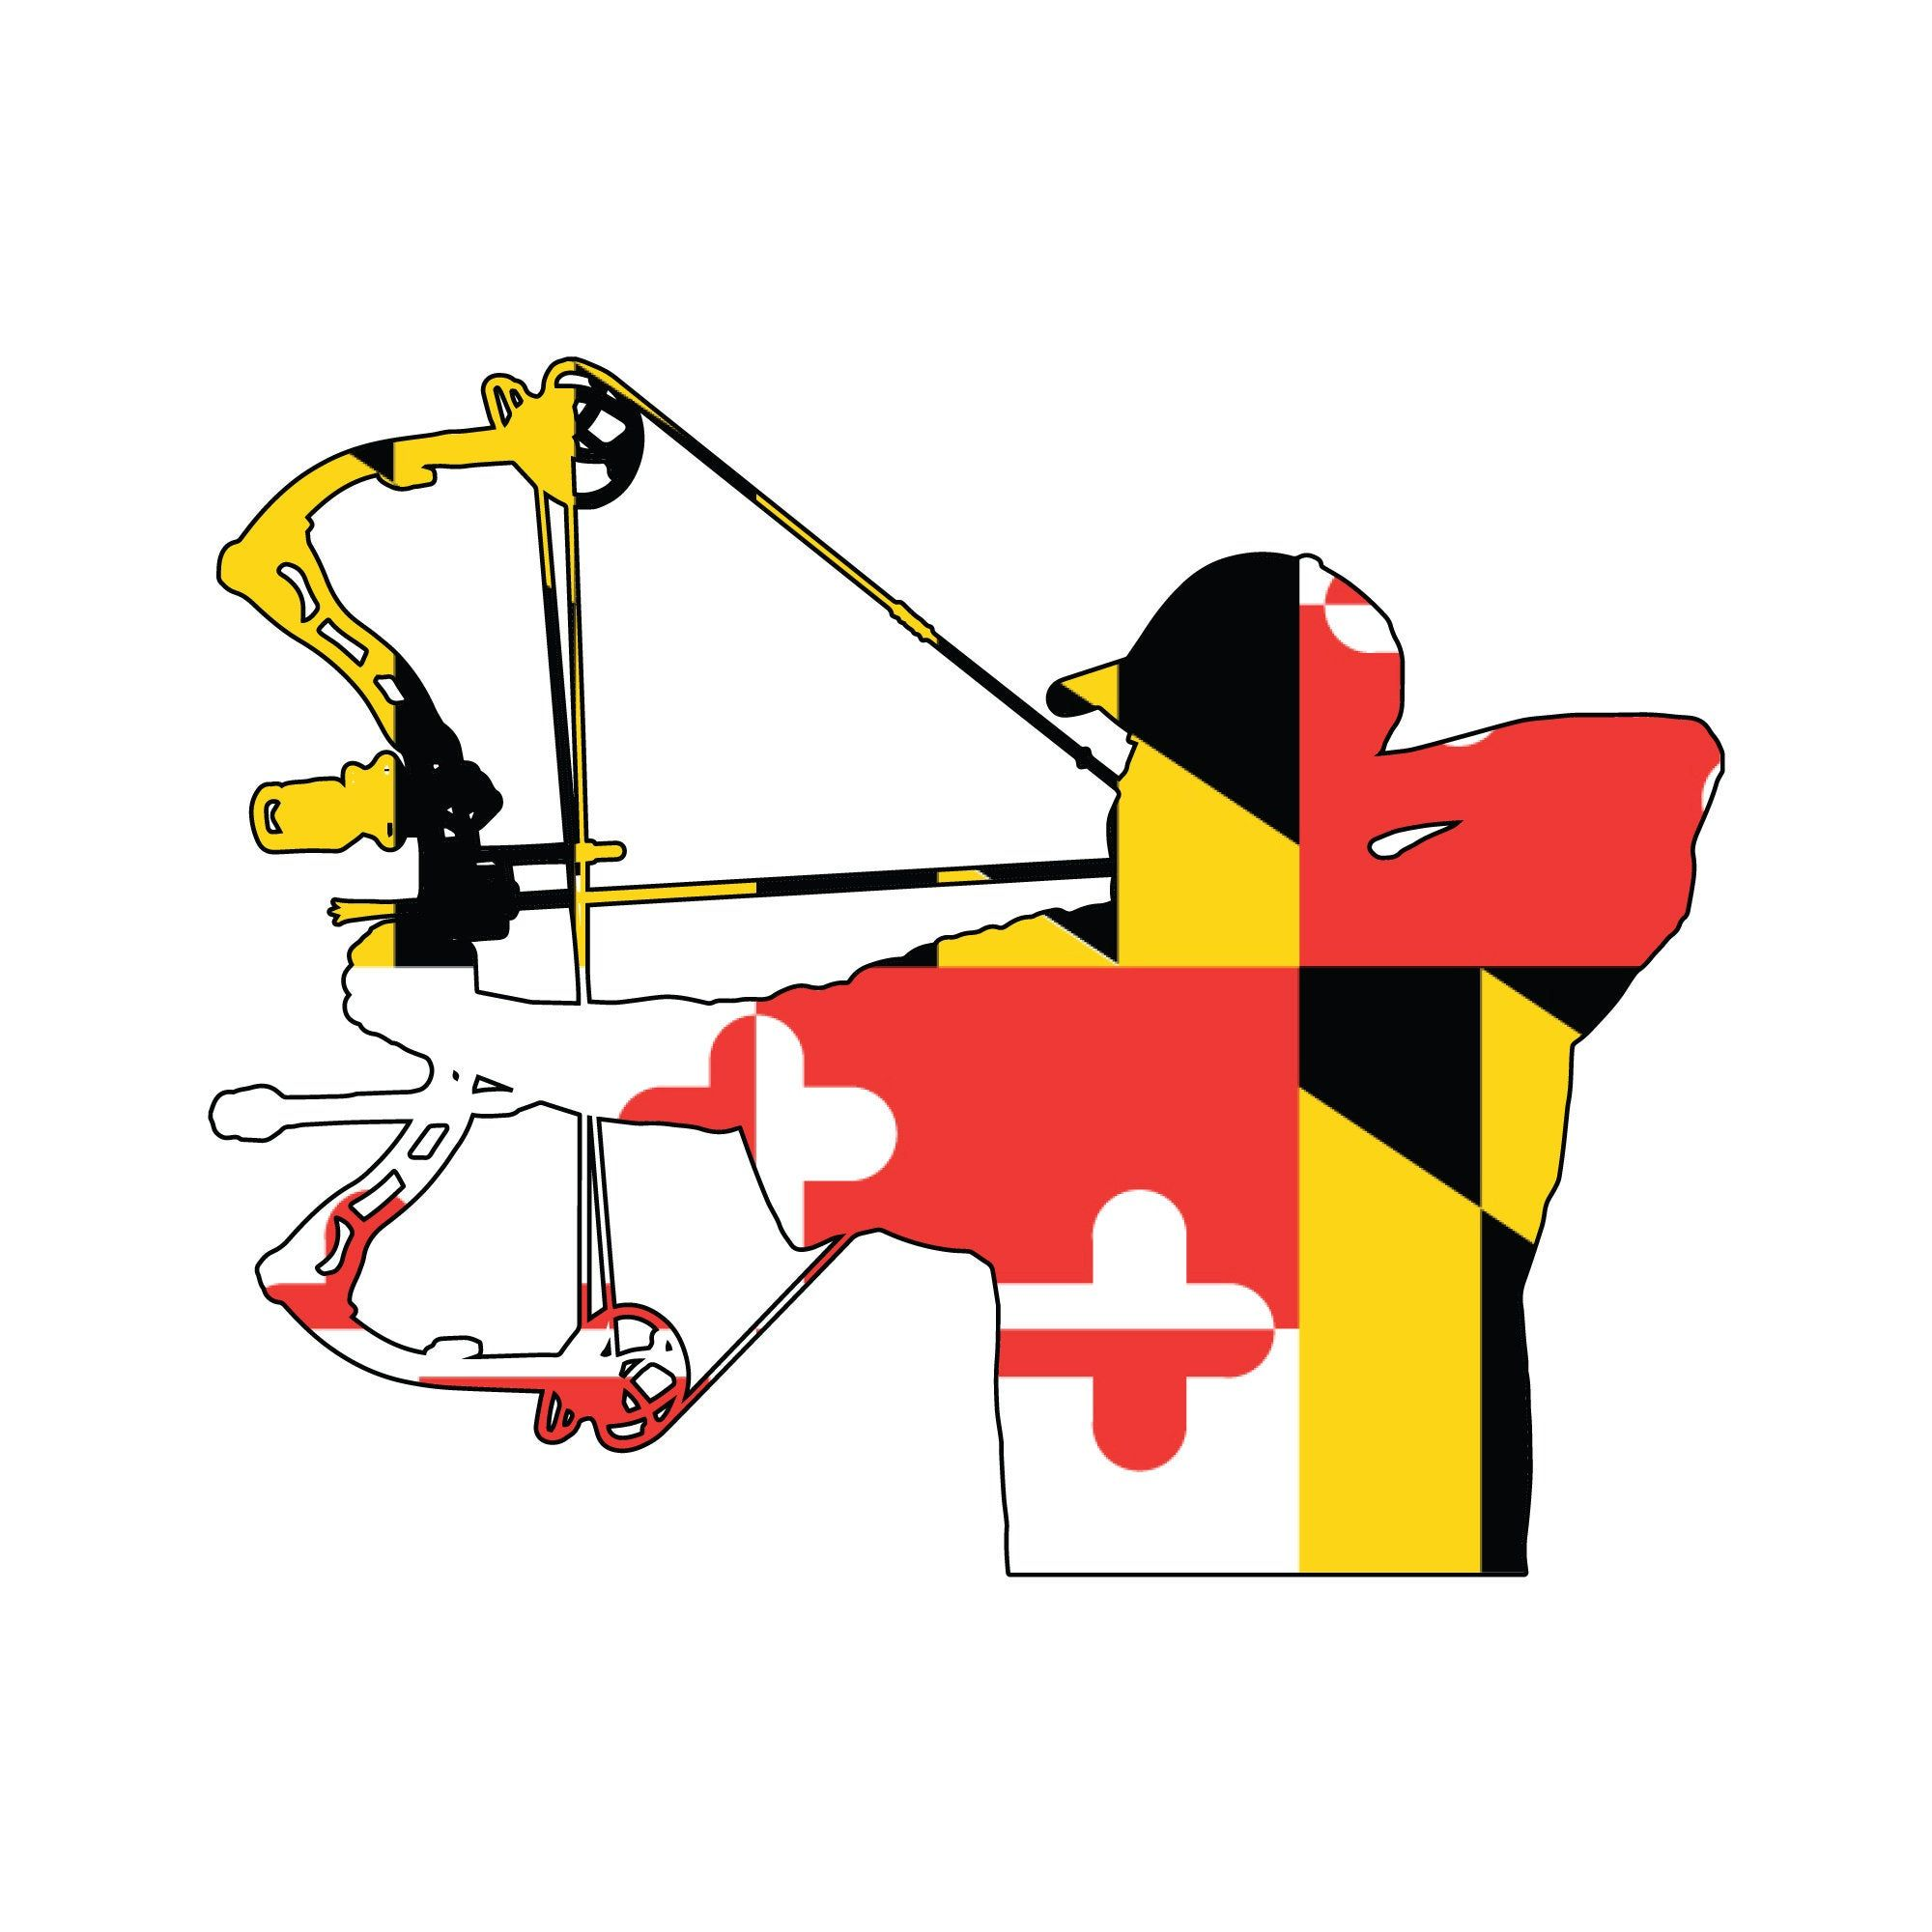 Maryland Flag Bowhunter Decal Window Sticker Bowhunter Vehicle Decal Hunting Sticker By Huntlocal On Etsy In 2020 Bow Hunting Maryland Flag Window Stickers